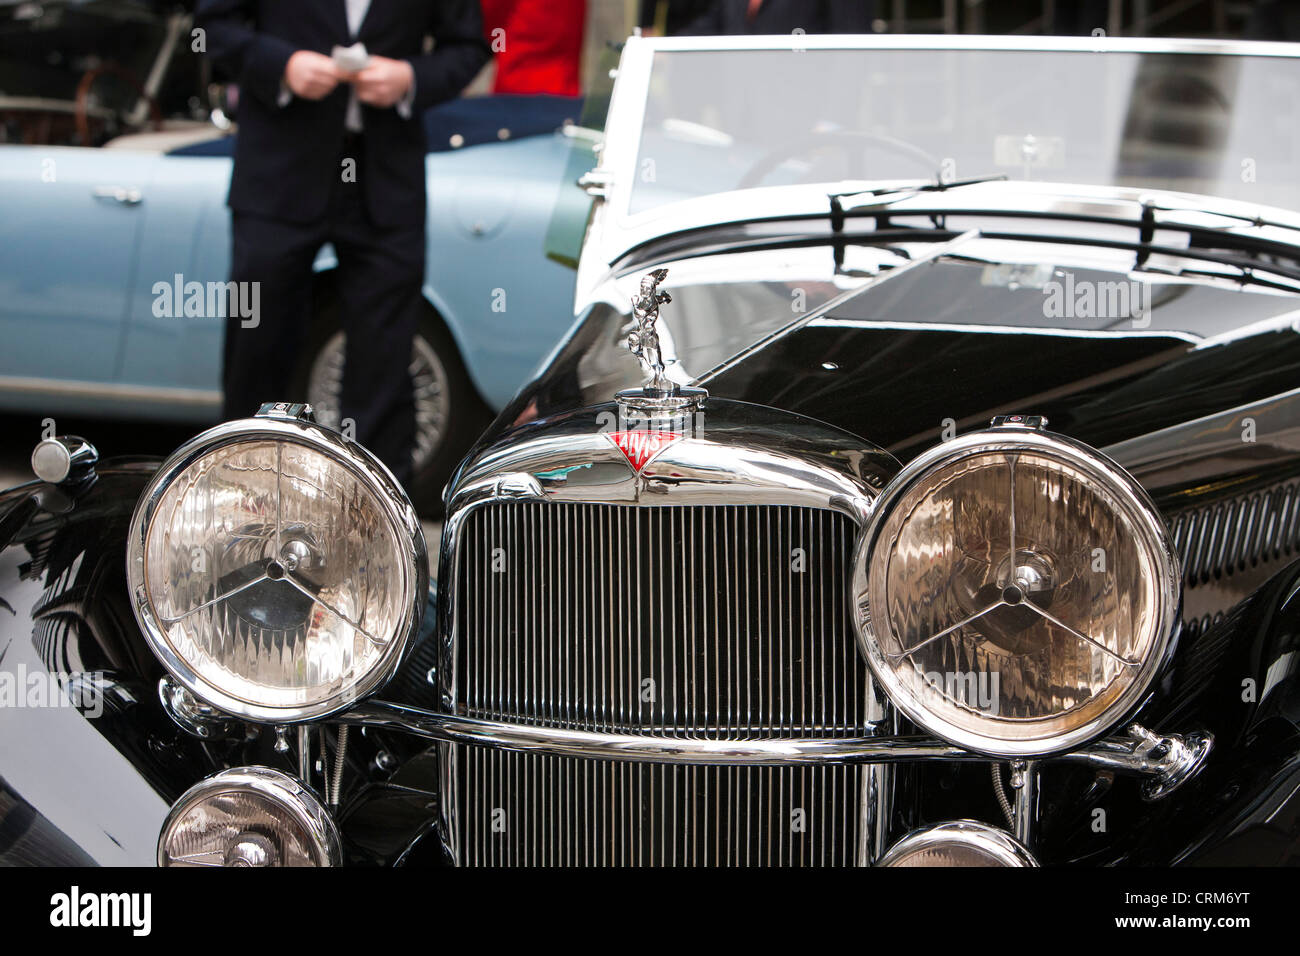 A 4.3 litre Alvis reproduction car parked outside Lloyds of London, UK. - Stock Image